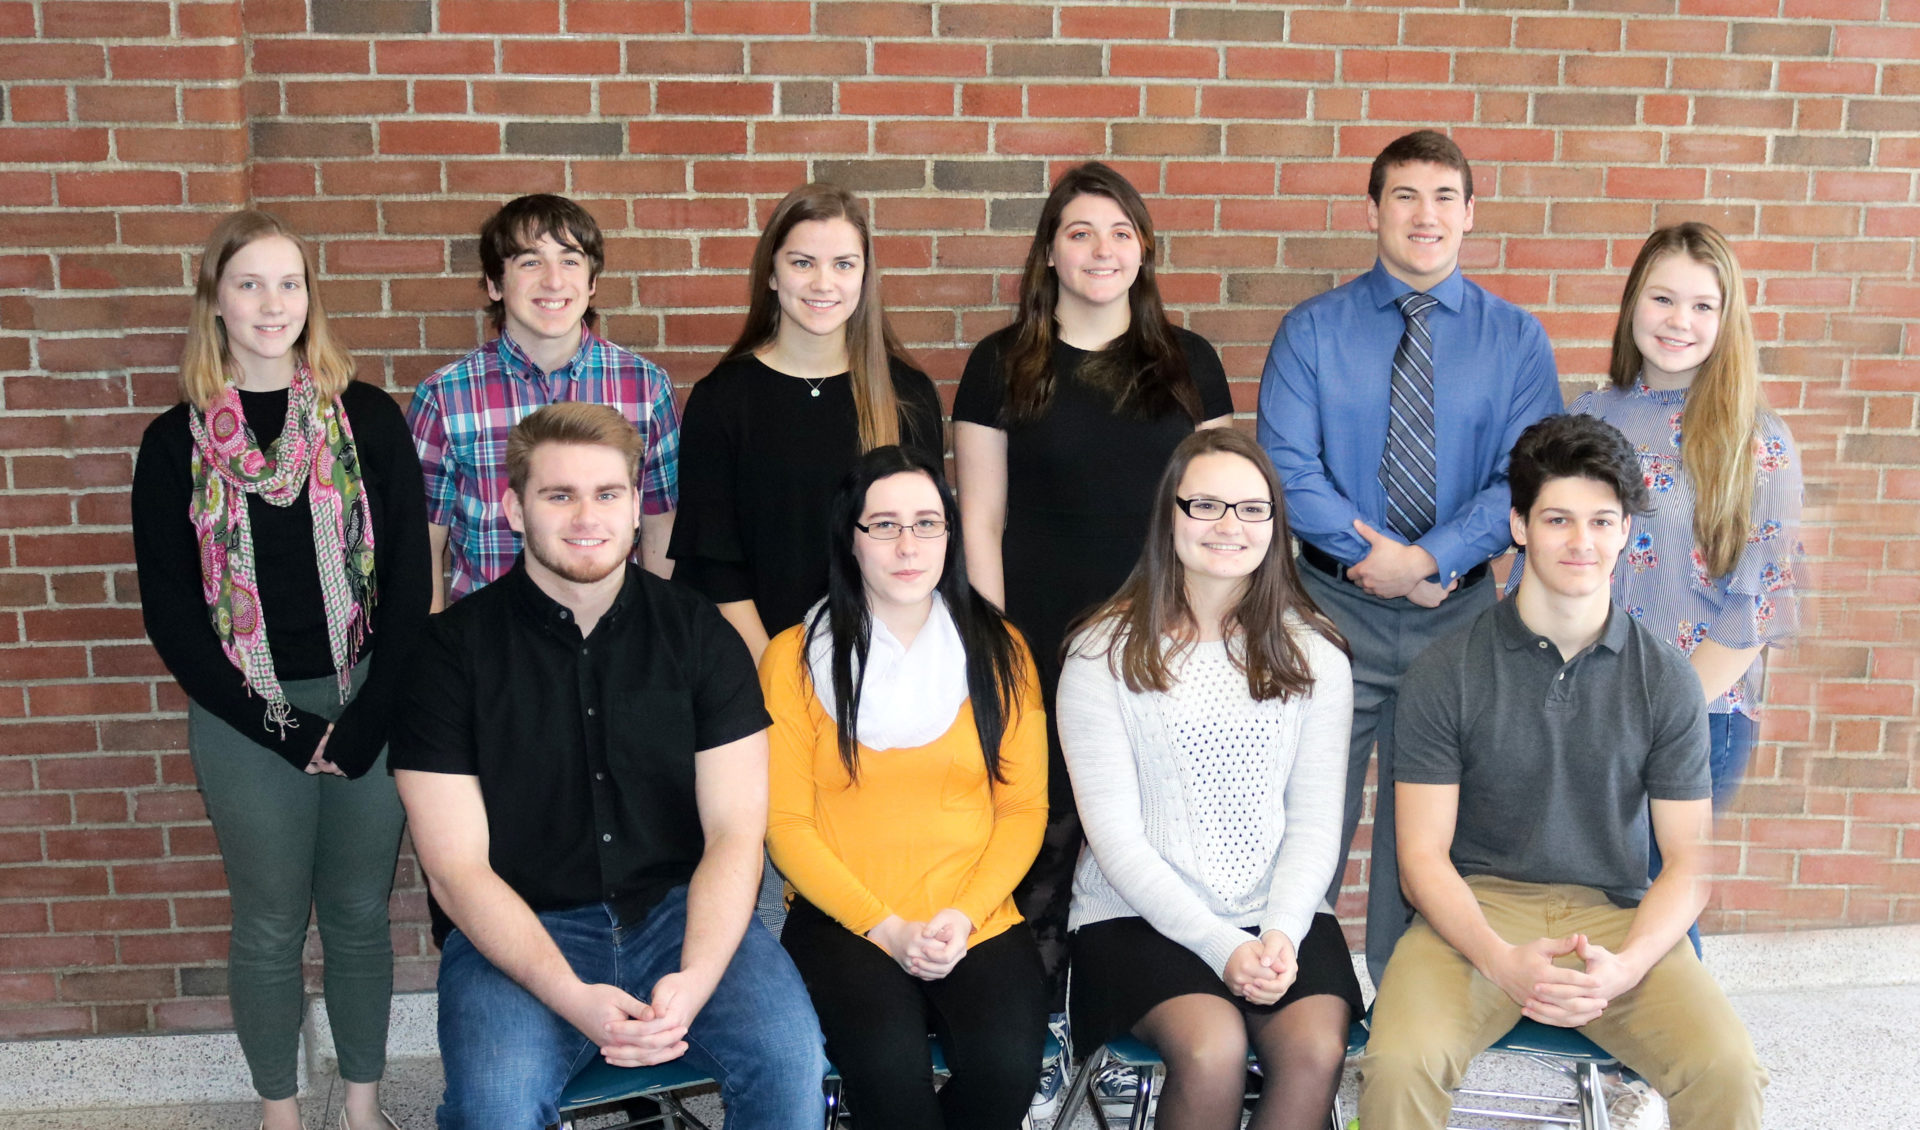 Caption: These top-ranked seniors are graduating at the head of the Class of 2019 at Gowanda High School. Front: Andrew Musacchio, Samantha Kinnaird, Kasie Salzman and Justin Kohn. Back: Brooke Riedel, Tyler Dakin, Olivia Ackley, Ceili Lipp, Ryan Gernatt and Grace Pawlak.